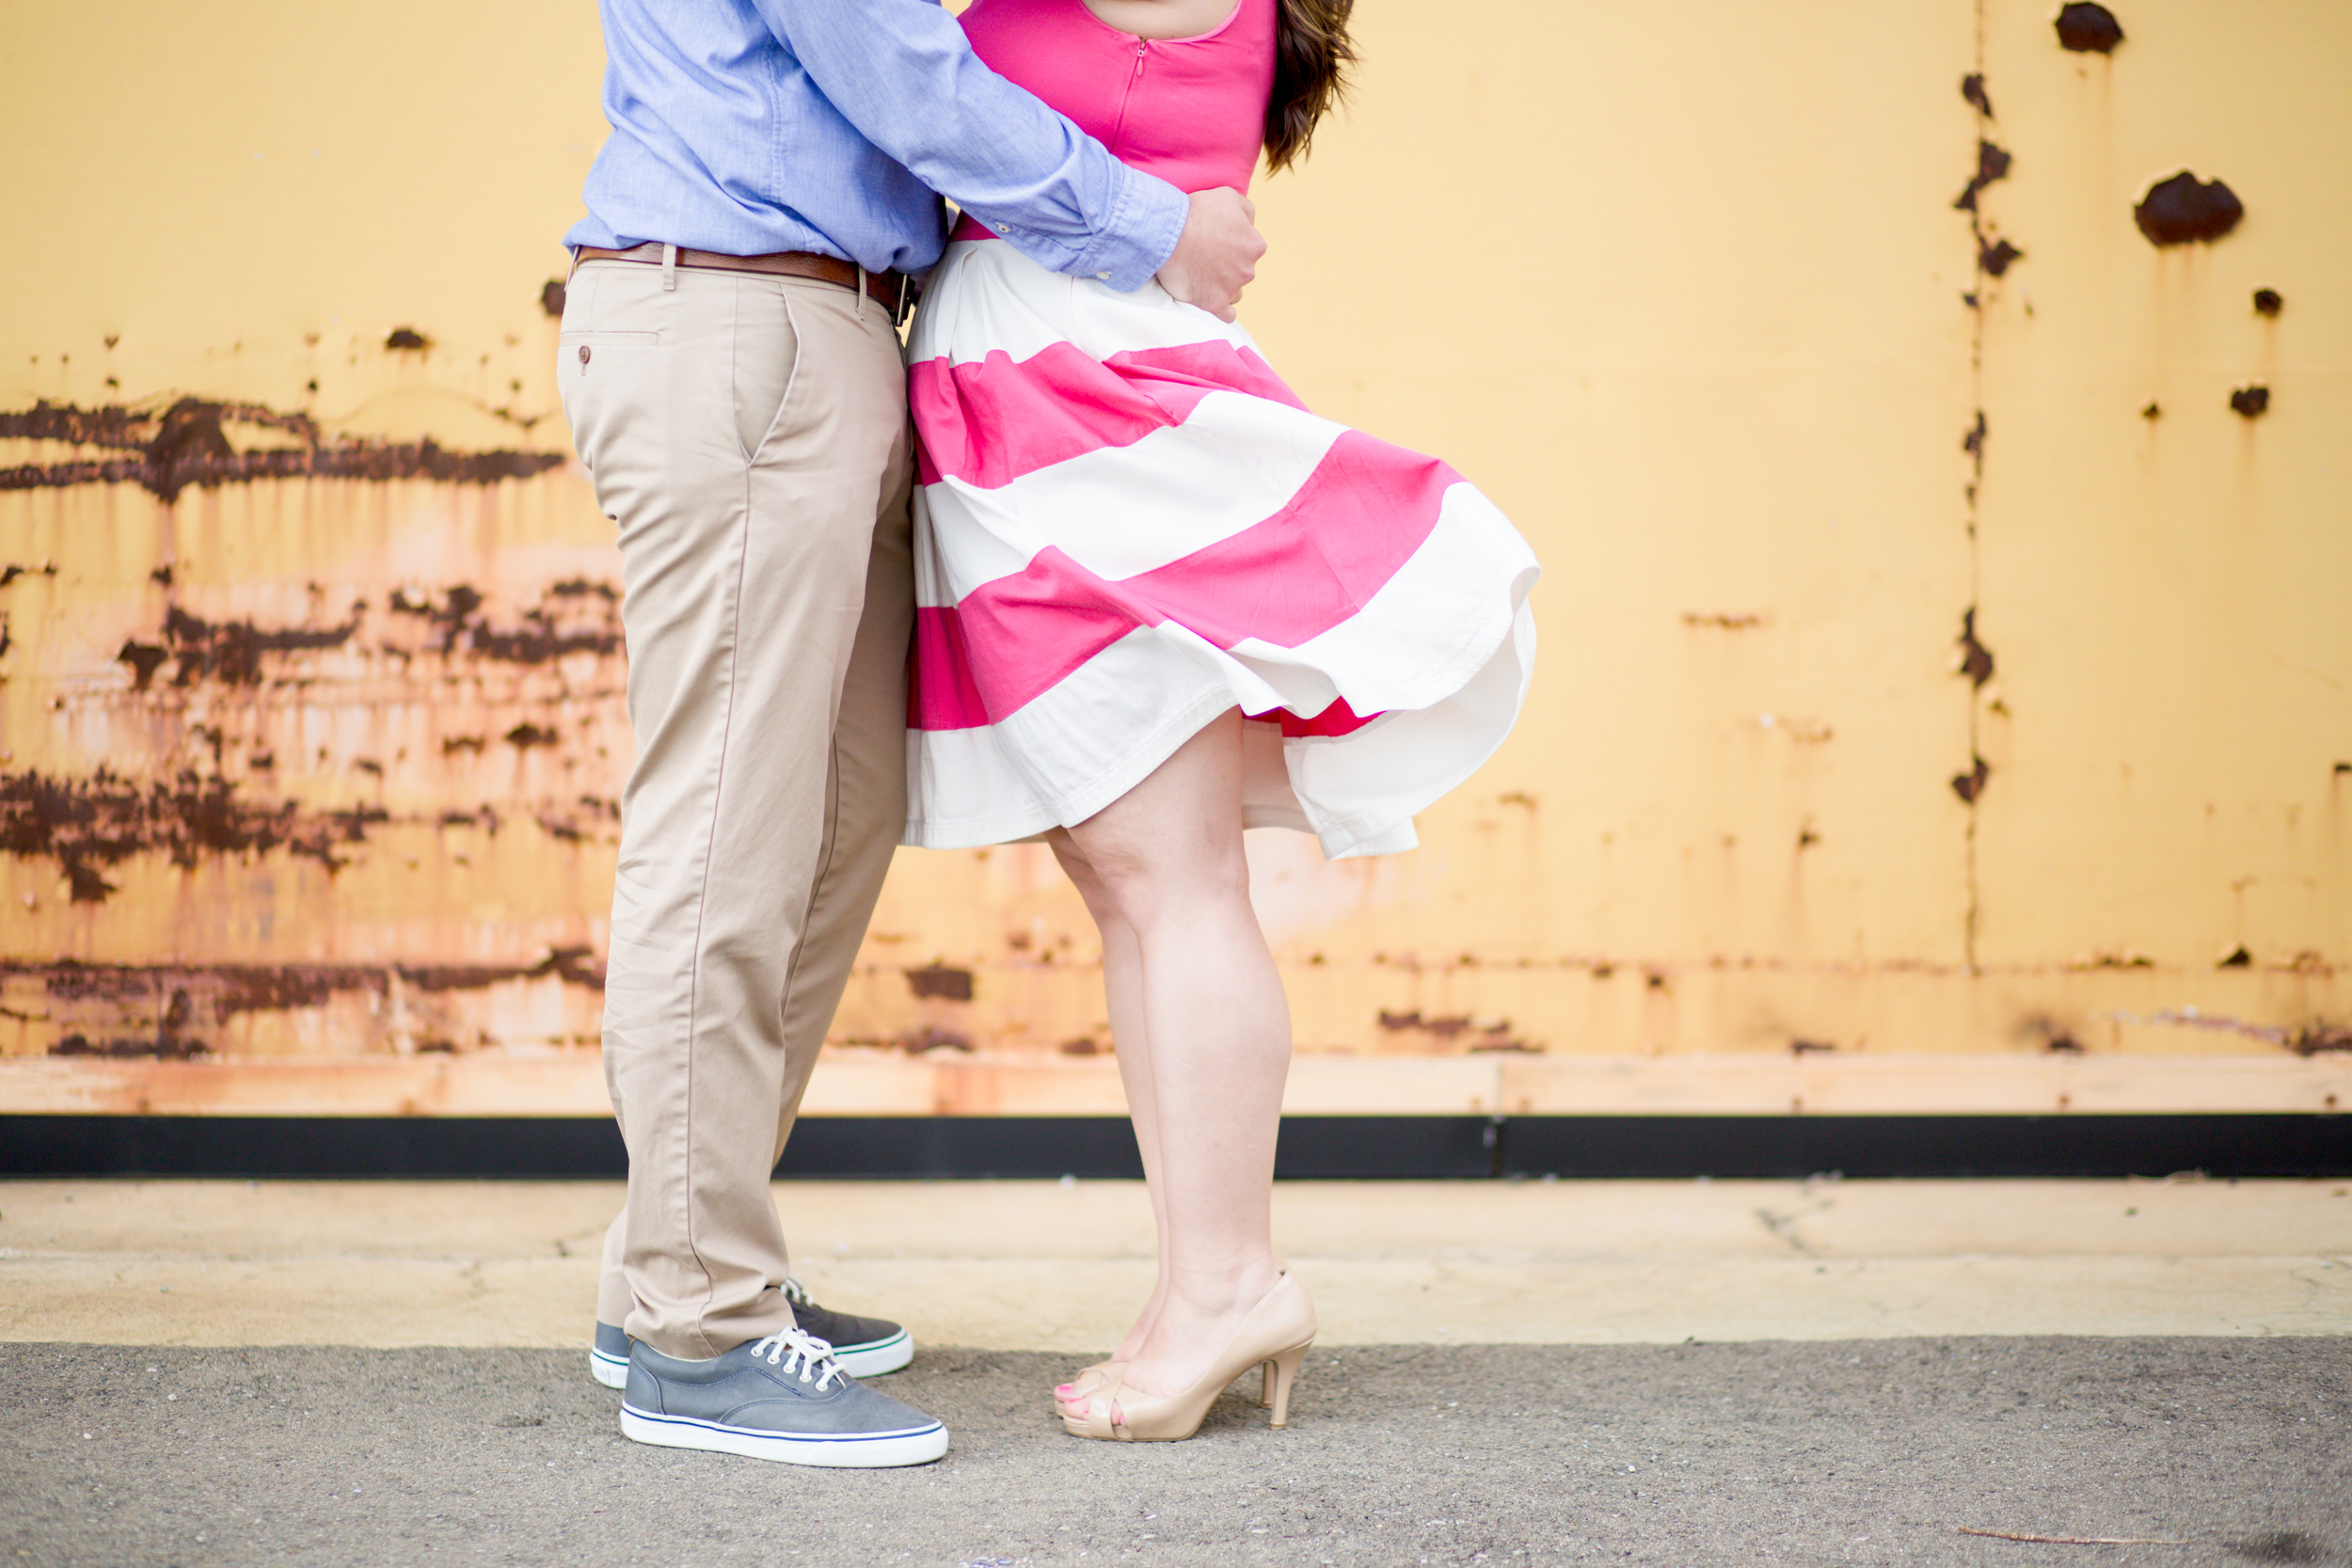 Lacey_Michelle_Photography_LR-1418.jpg